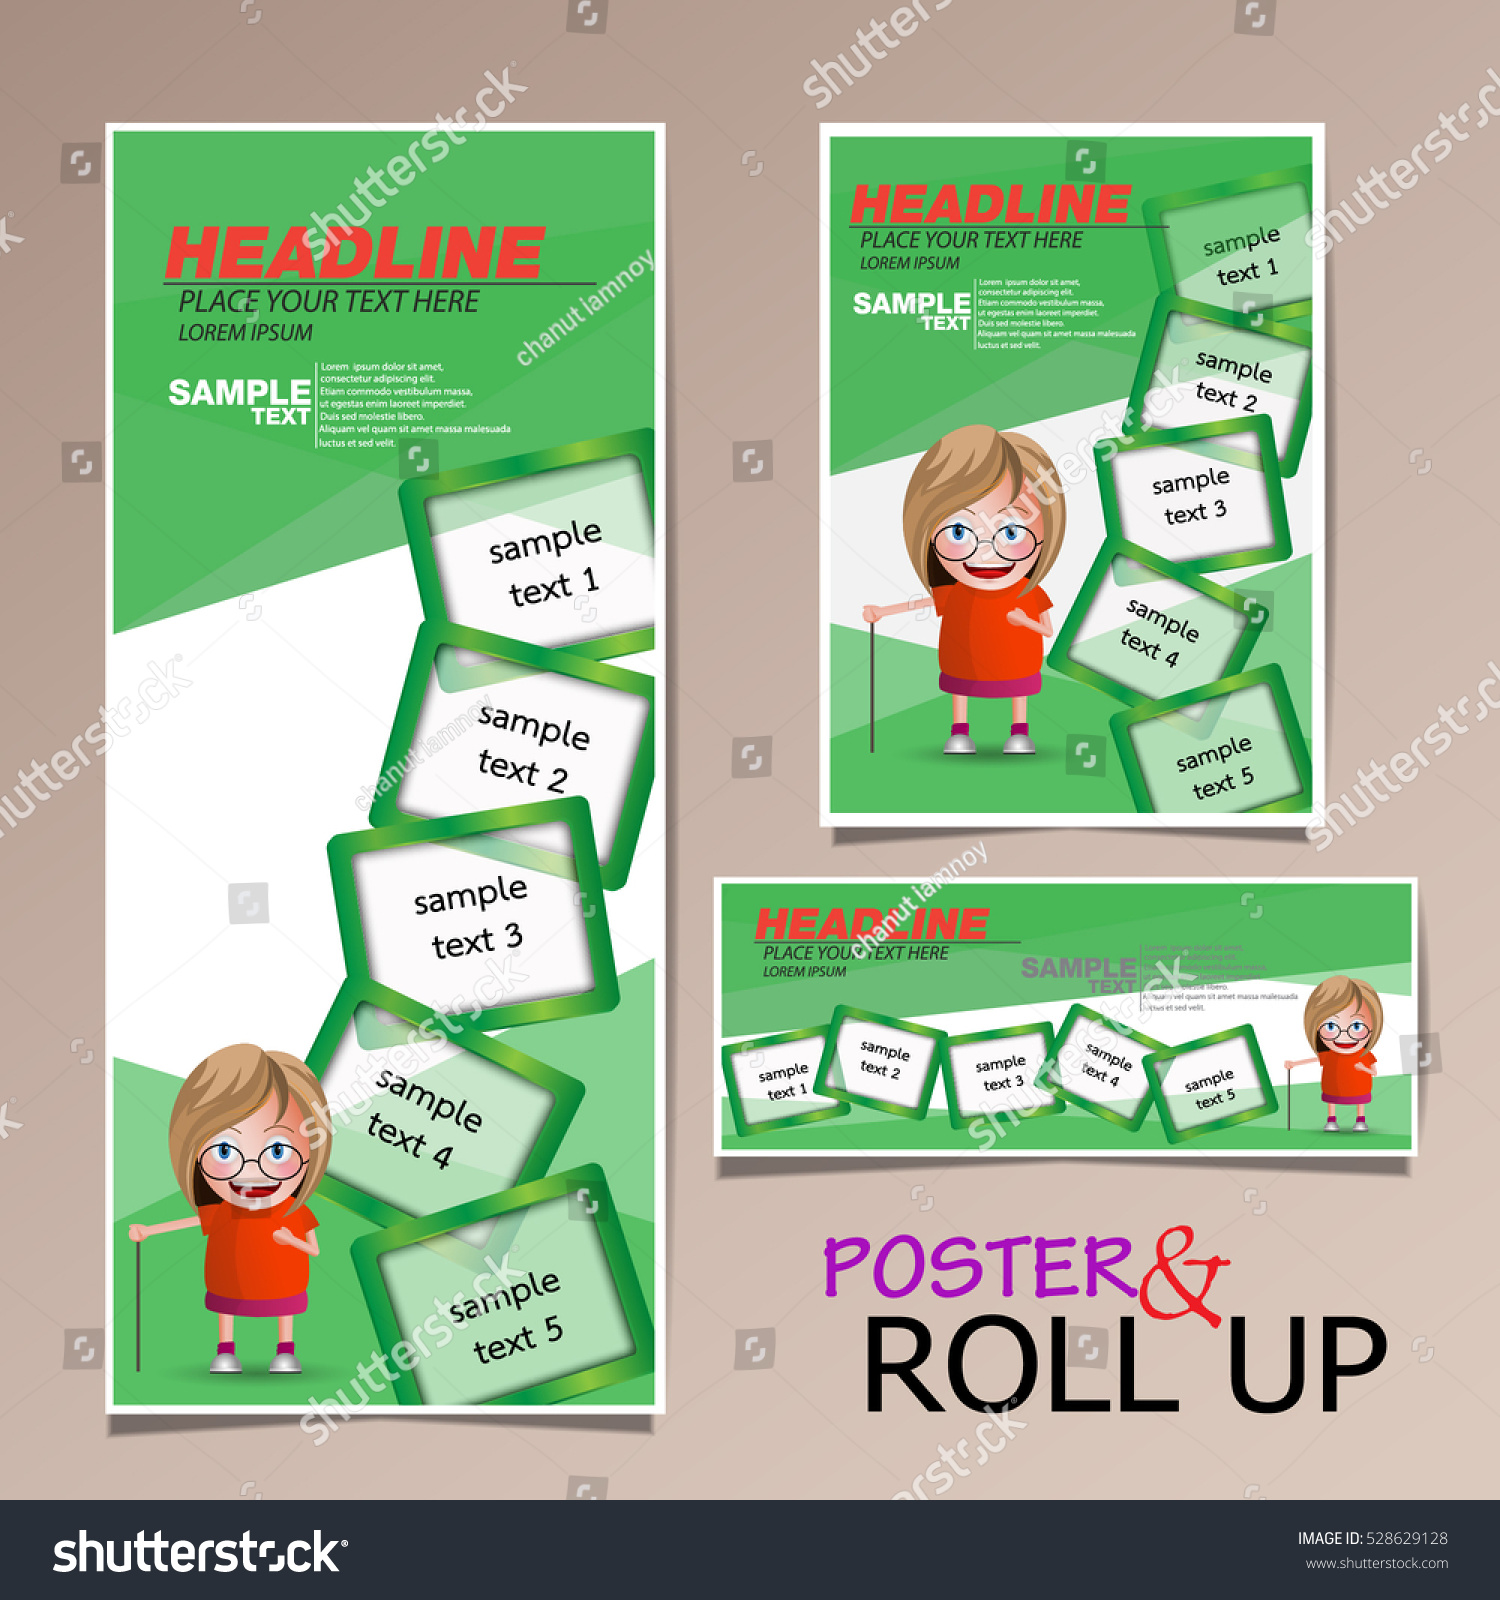 Green roll up business brochure flyer banner design vertical template - Roll Up And Poster Business Brochure Flyer Banner Design Vertical Template Vector Cover Presentation Abstract